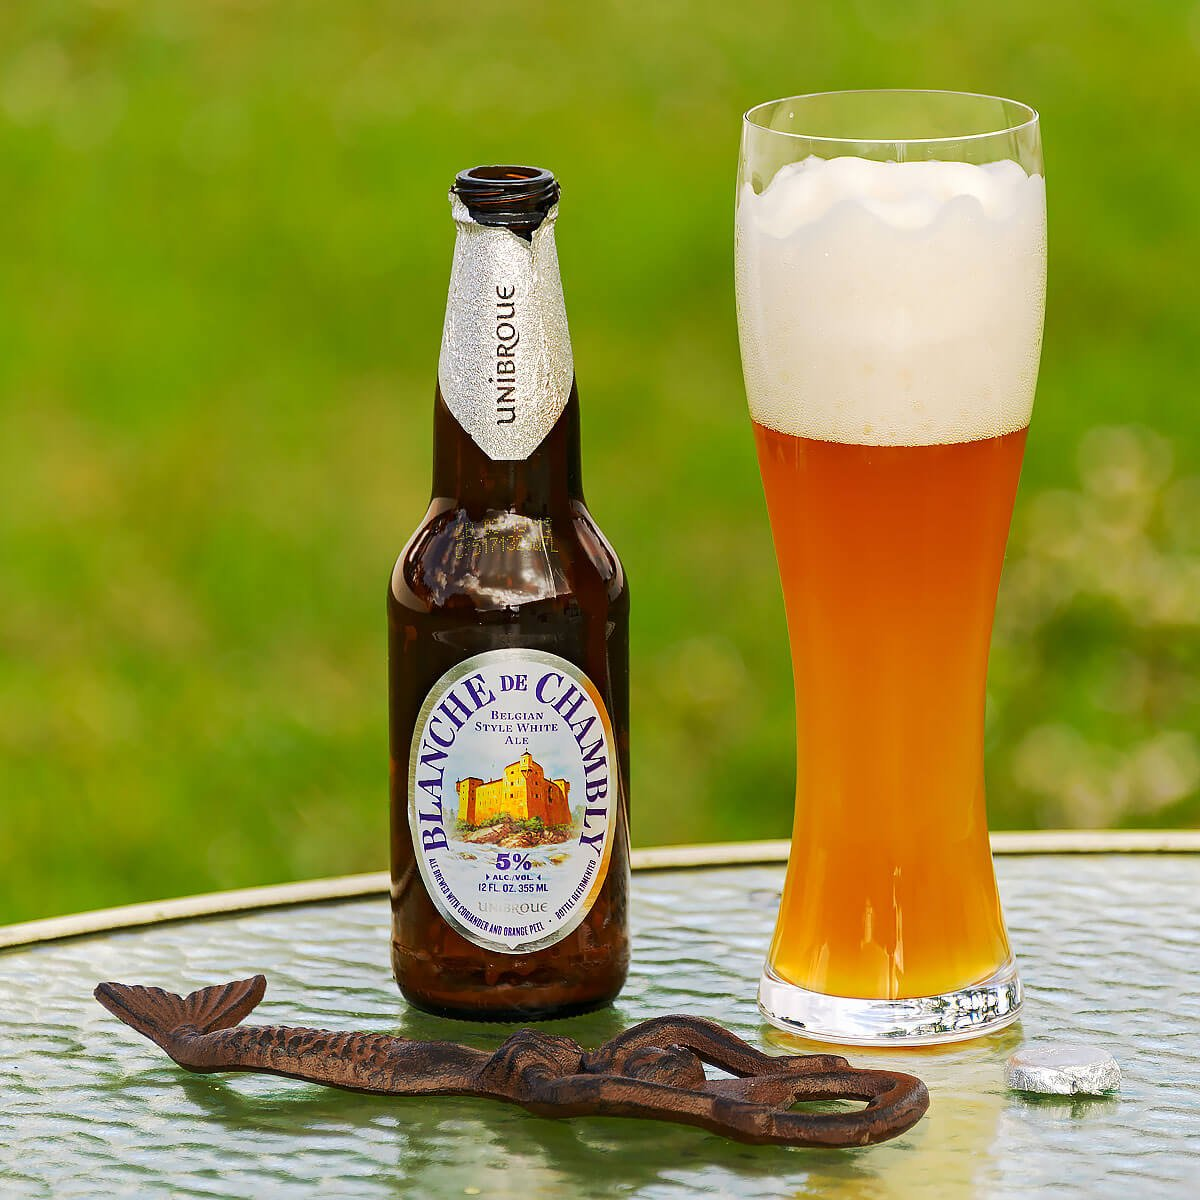 Blanche De Chambly, a Belgian-style Witbier by Unibroue